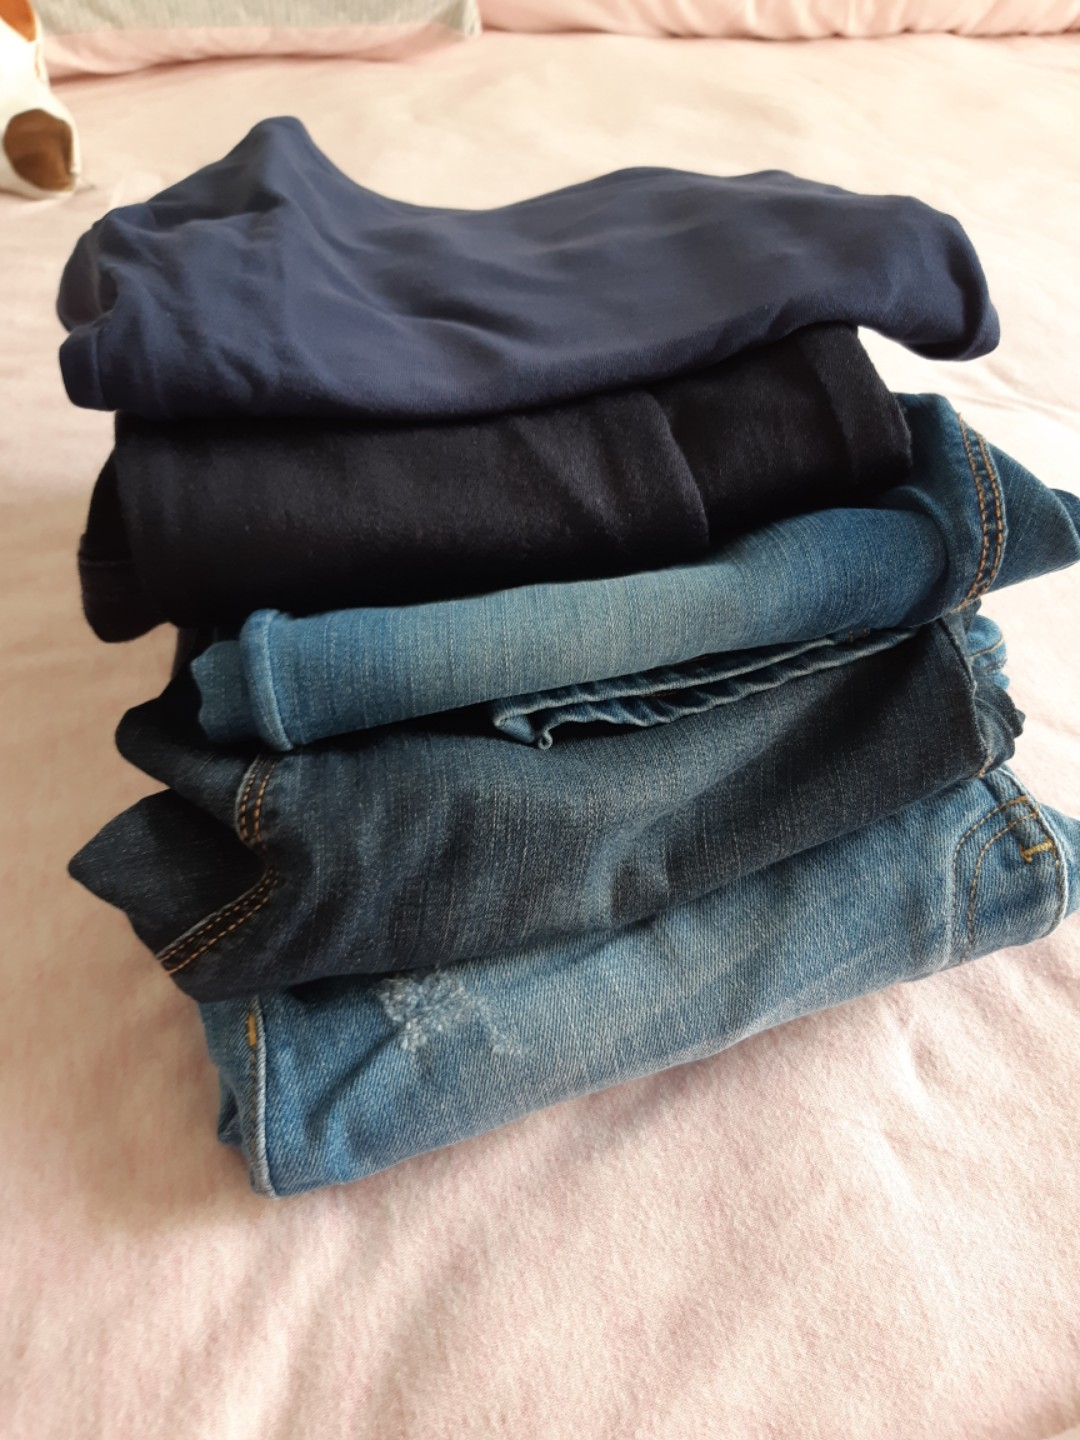 f189bfcd4e381 H&M Maternity Jeans - euro 34/us 4 and euro36/us6, Babies & Kids ...